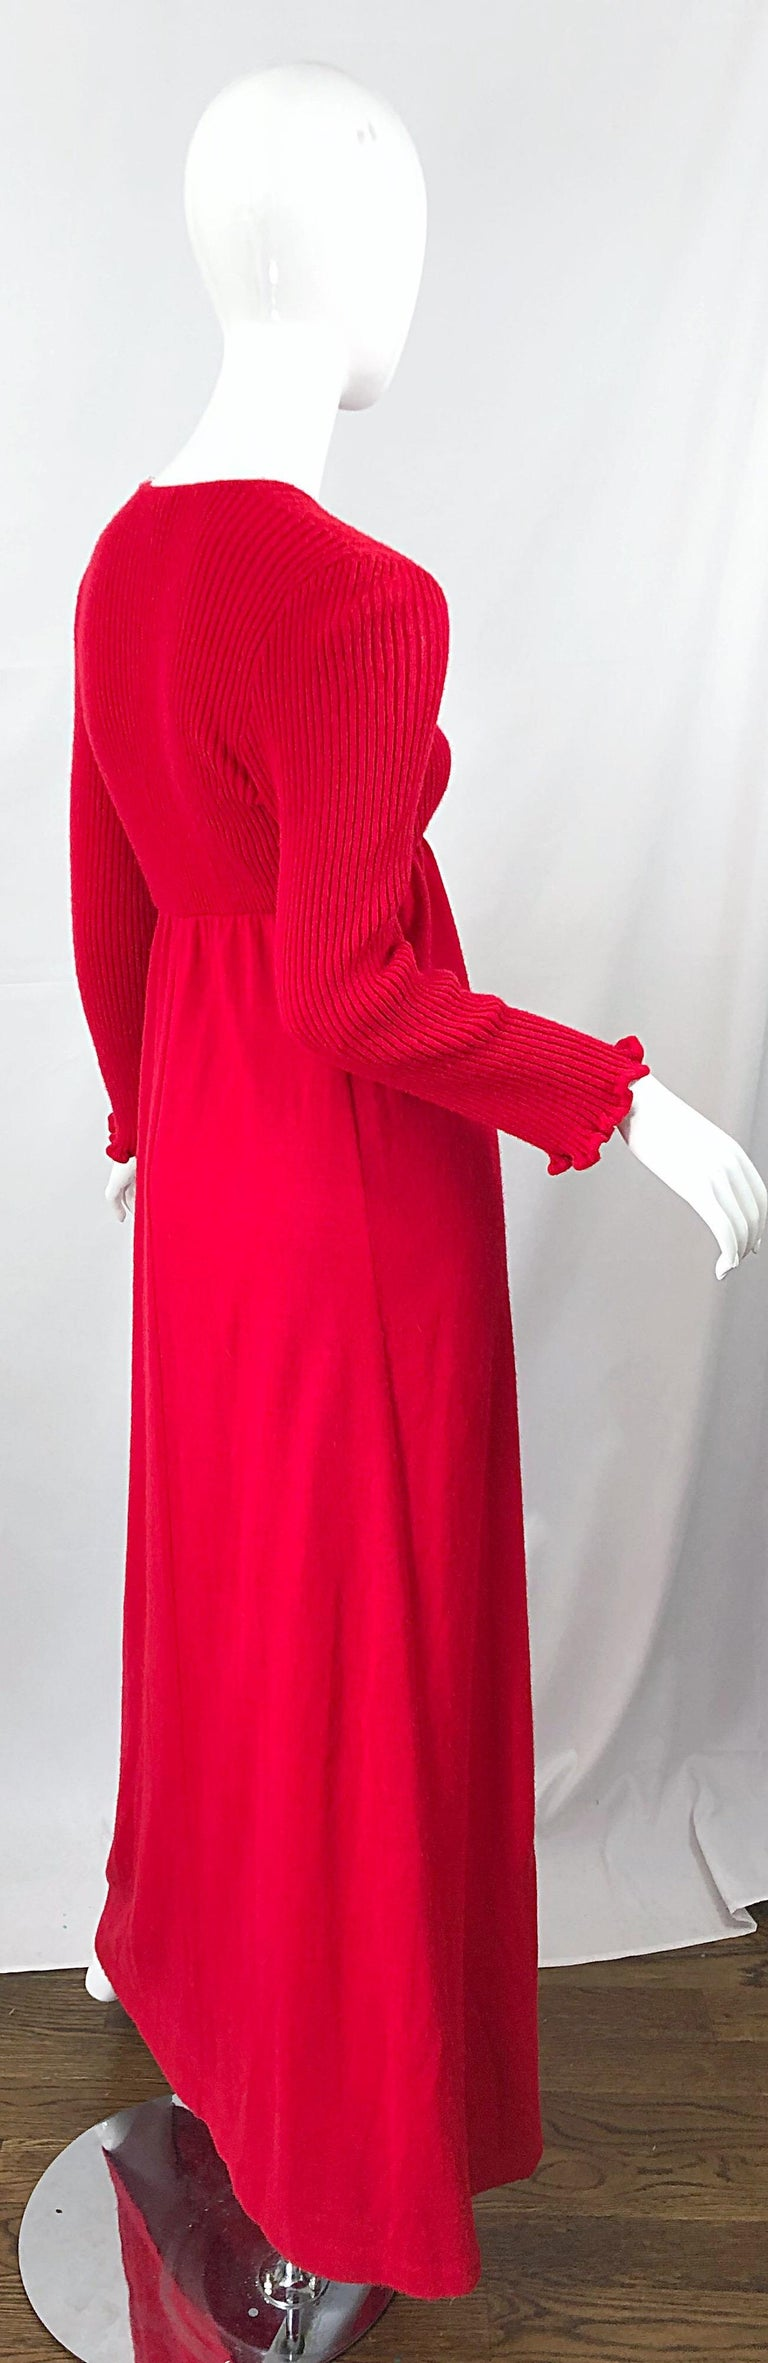 Vintage Joseph Magnin 1970s Lipstick Red Long Sleeve Wool 70s Sweater Maxi Dress For Sale 8